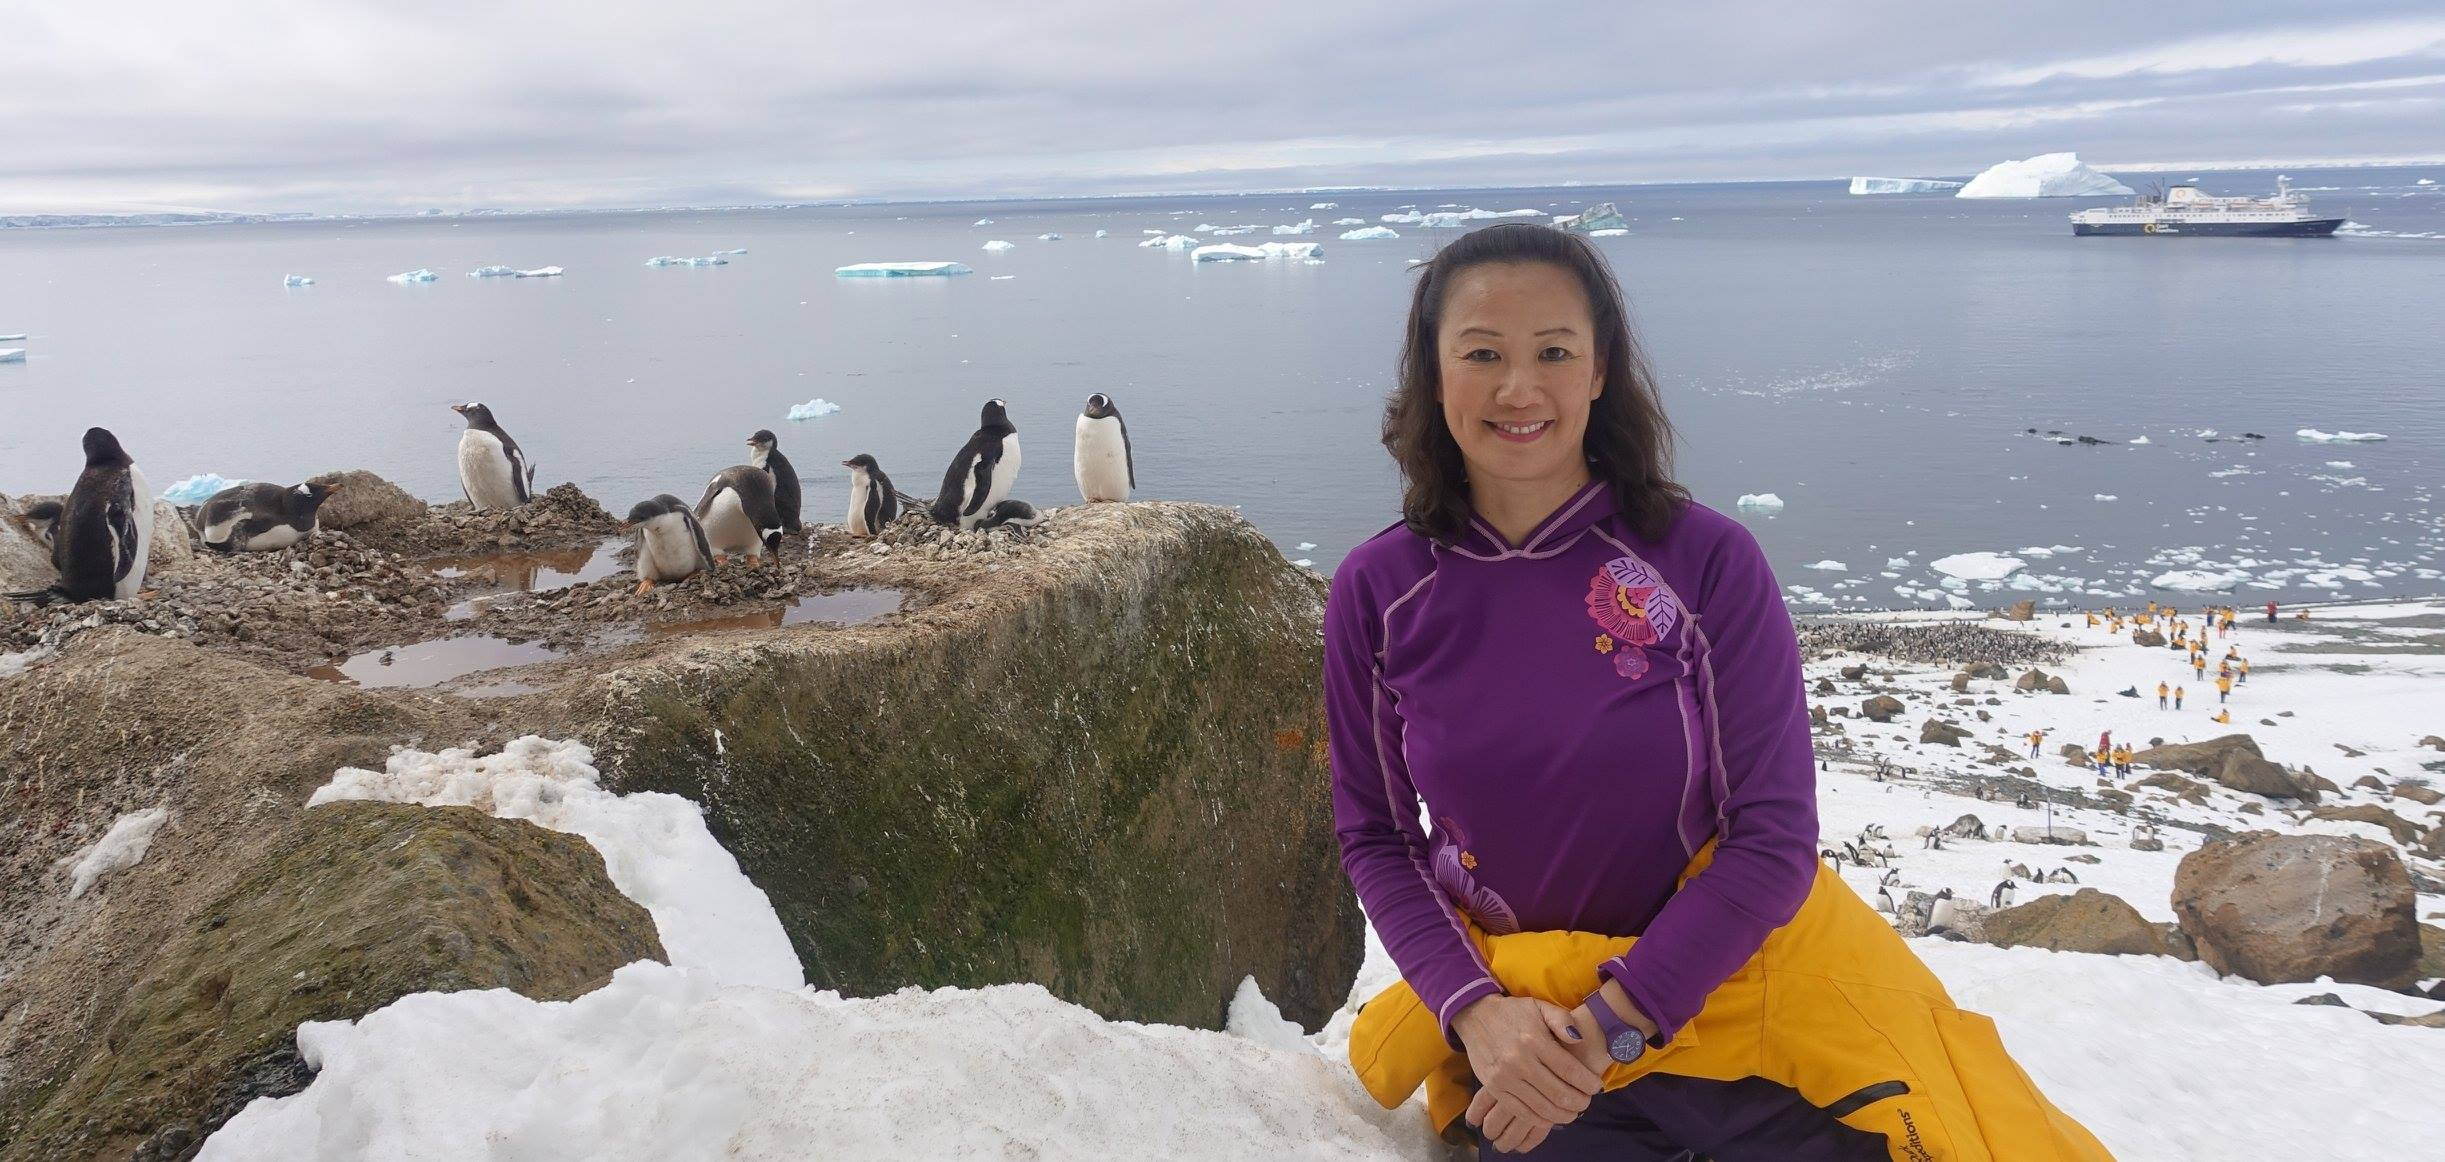 May Lee enjoys a quiet moment with a colony of Gentoo penguins perched high above an Antarctic bay, the Ocean Endeavour in the background